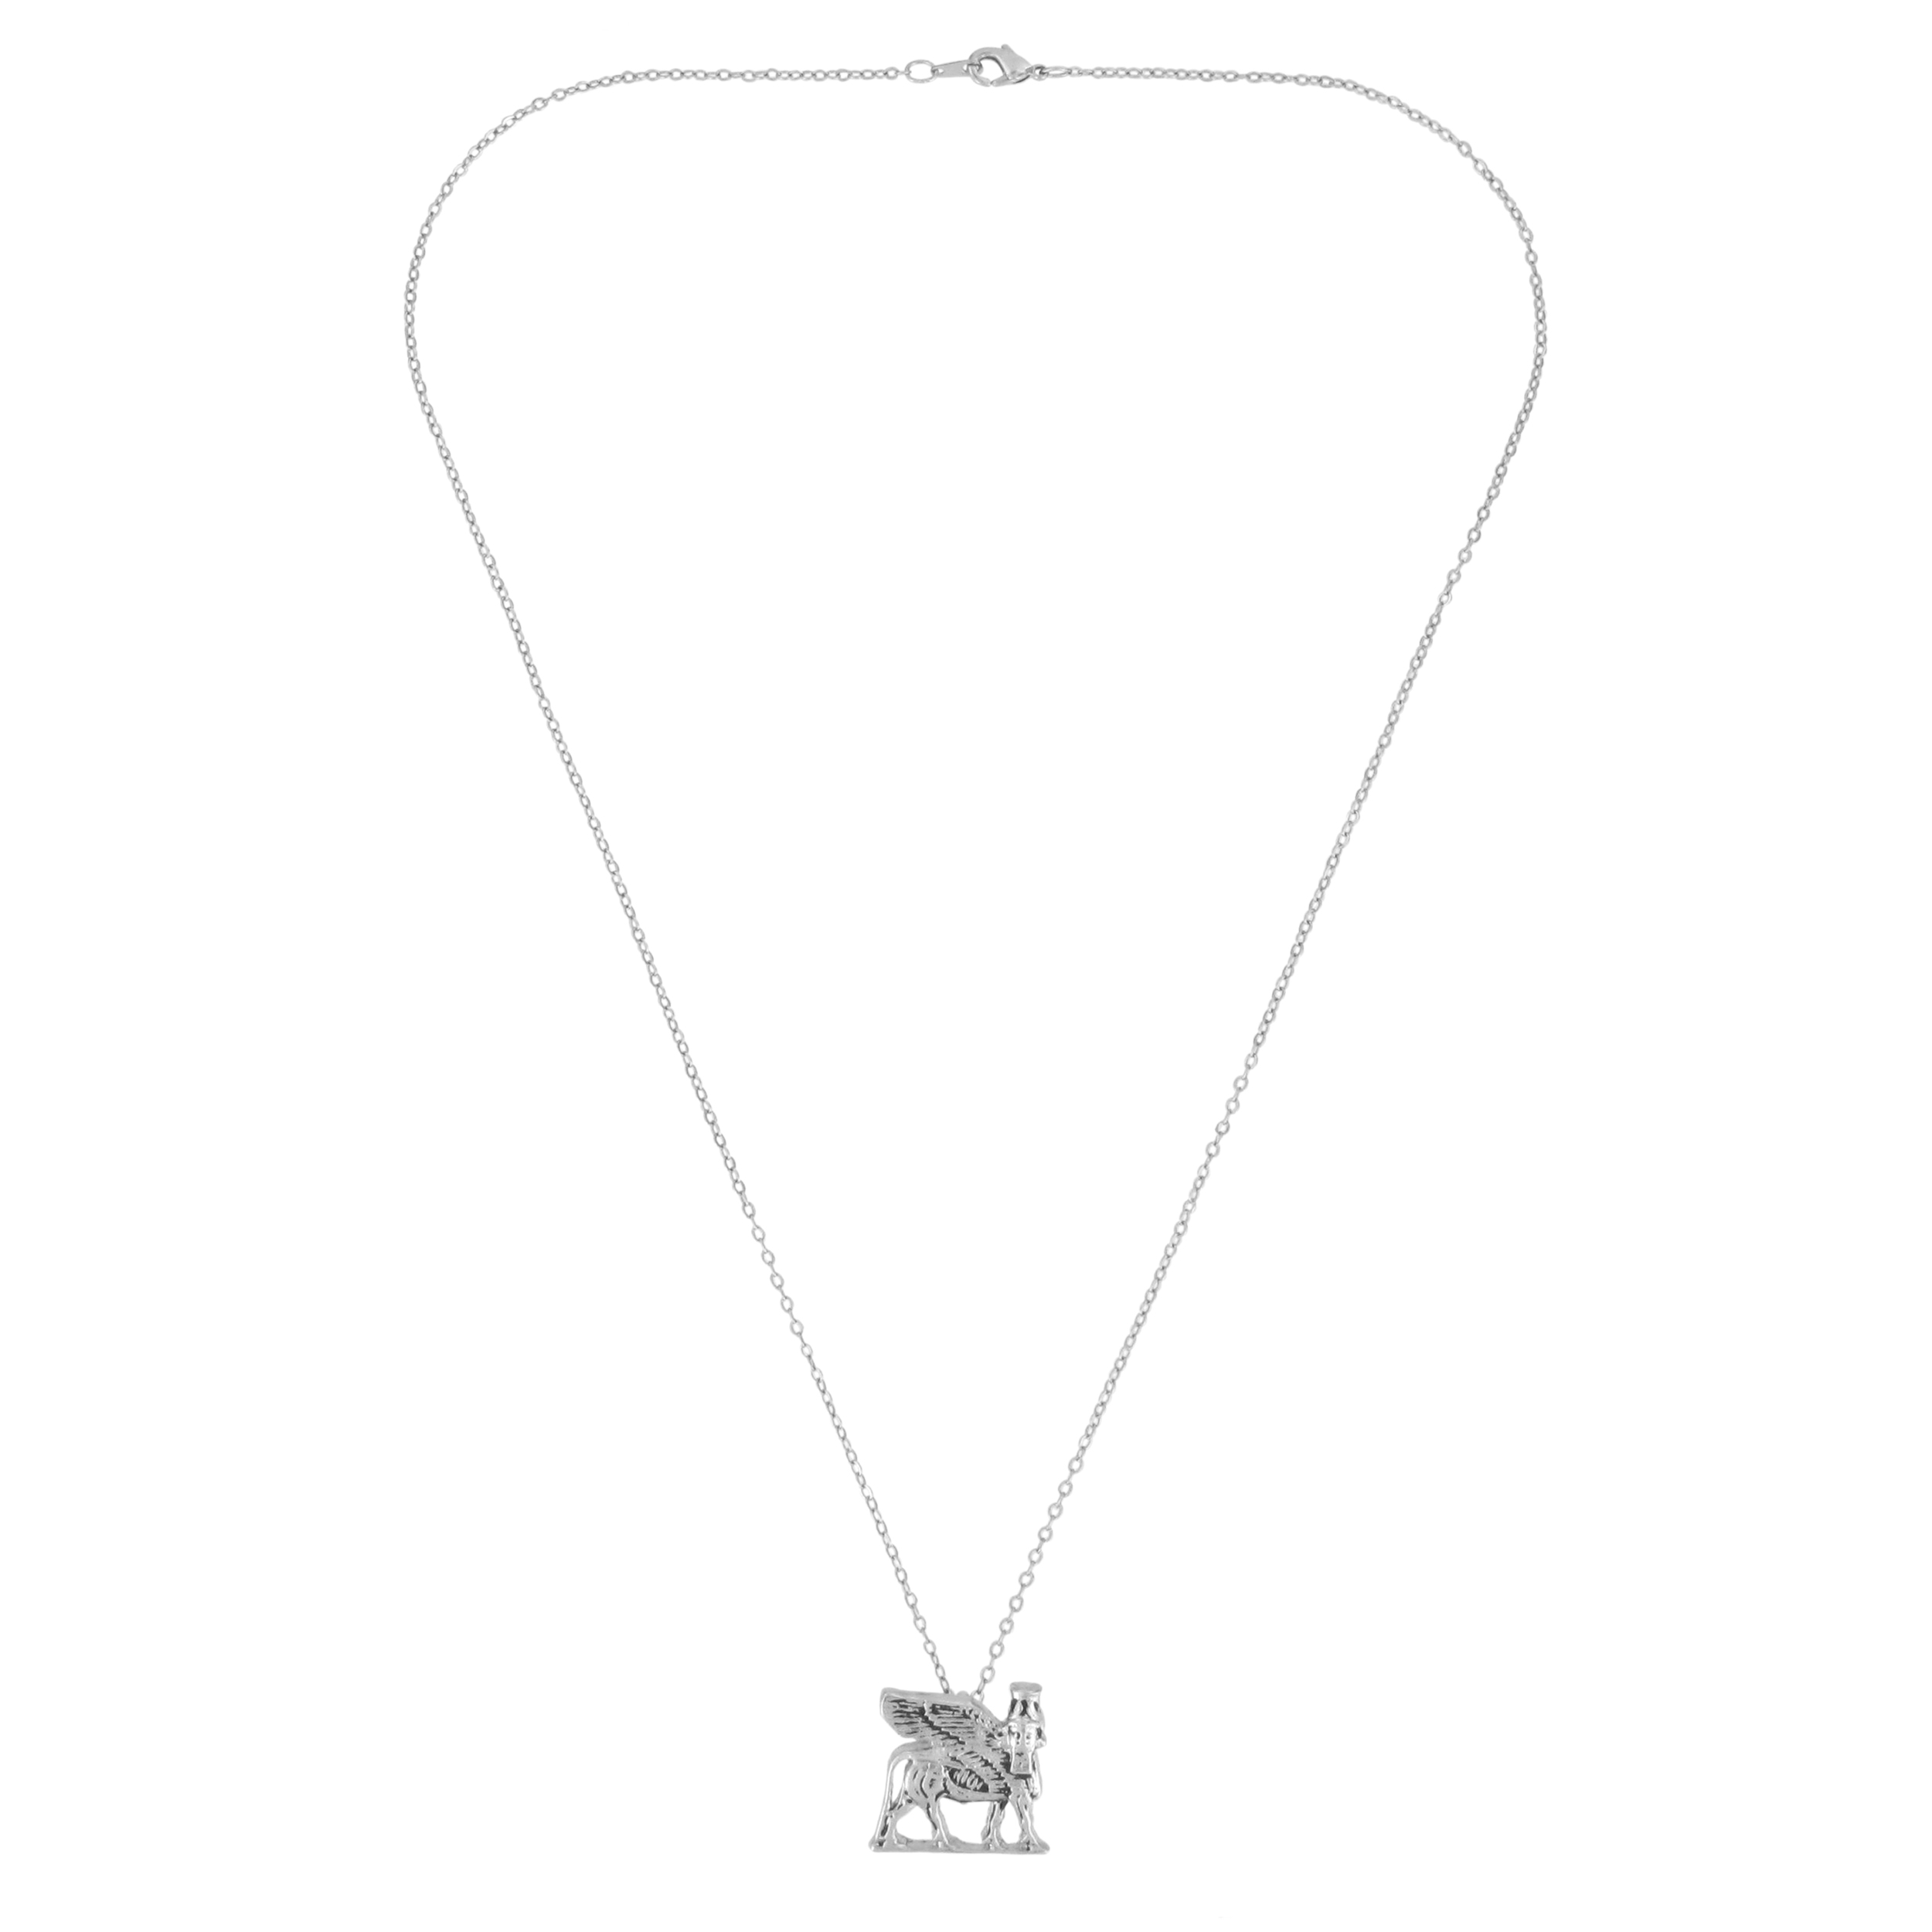 Winged Bull necklace